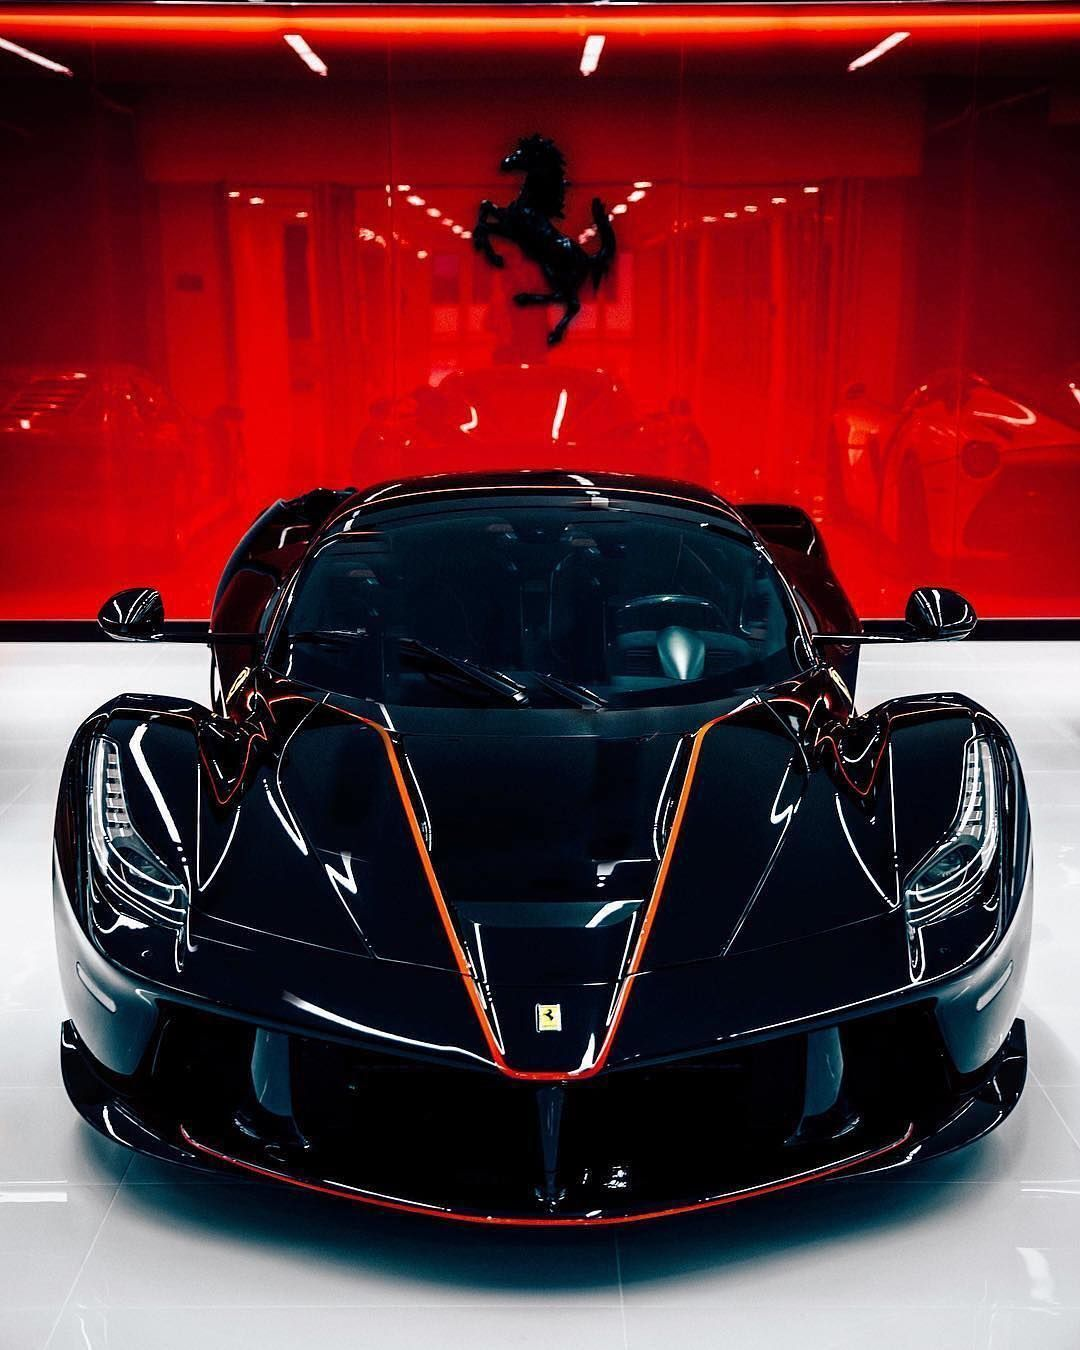 The Amazing Laferrari Hybrid Supercar Cool Sports Cars La Ferrari Best Luxury Cars